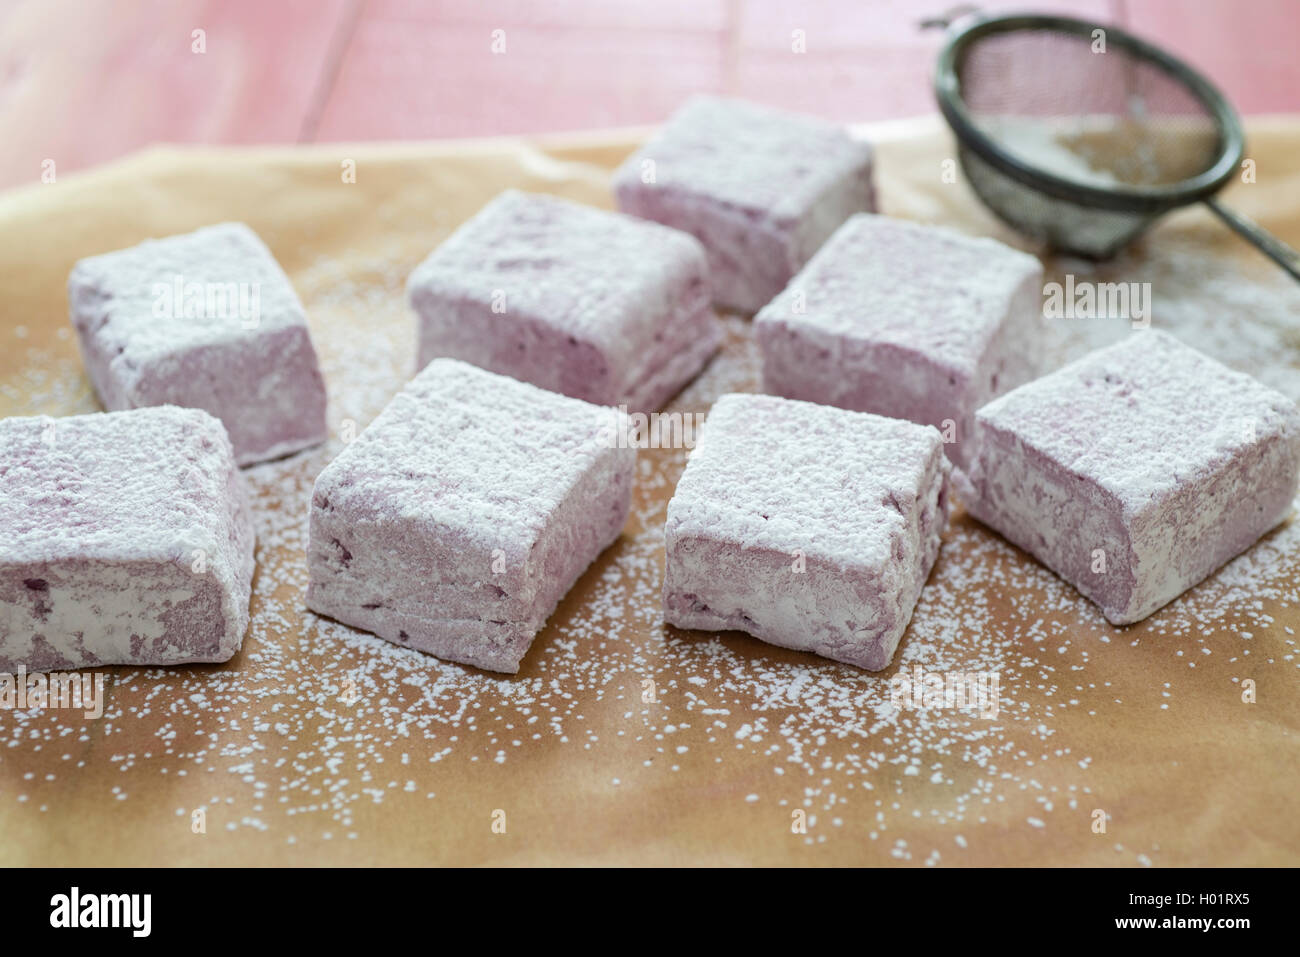 Homemade blackberry and rose marshmallows being cut and dusted with icing sugar. - Stock Image